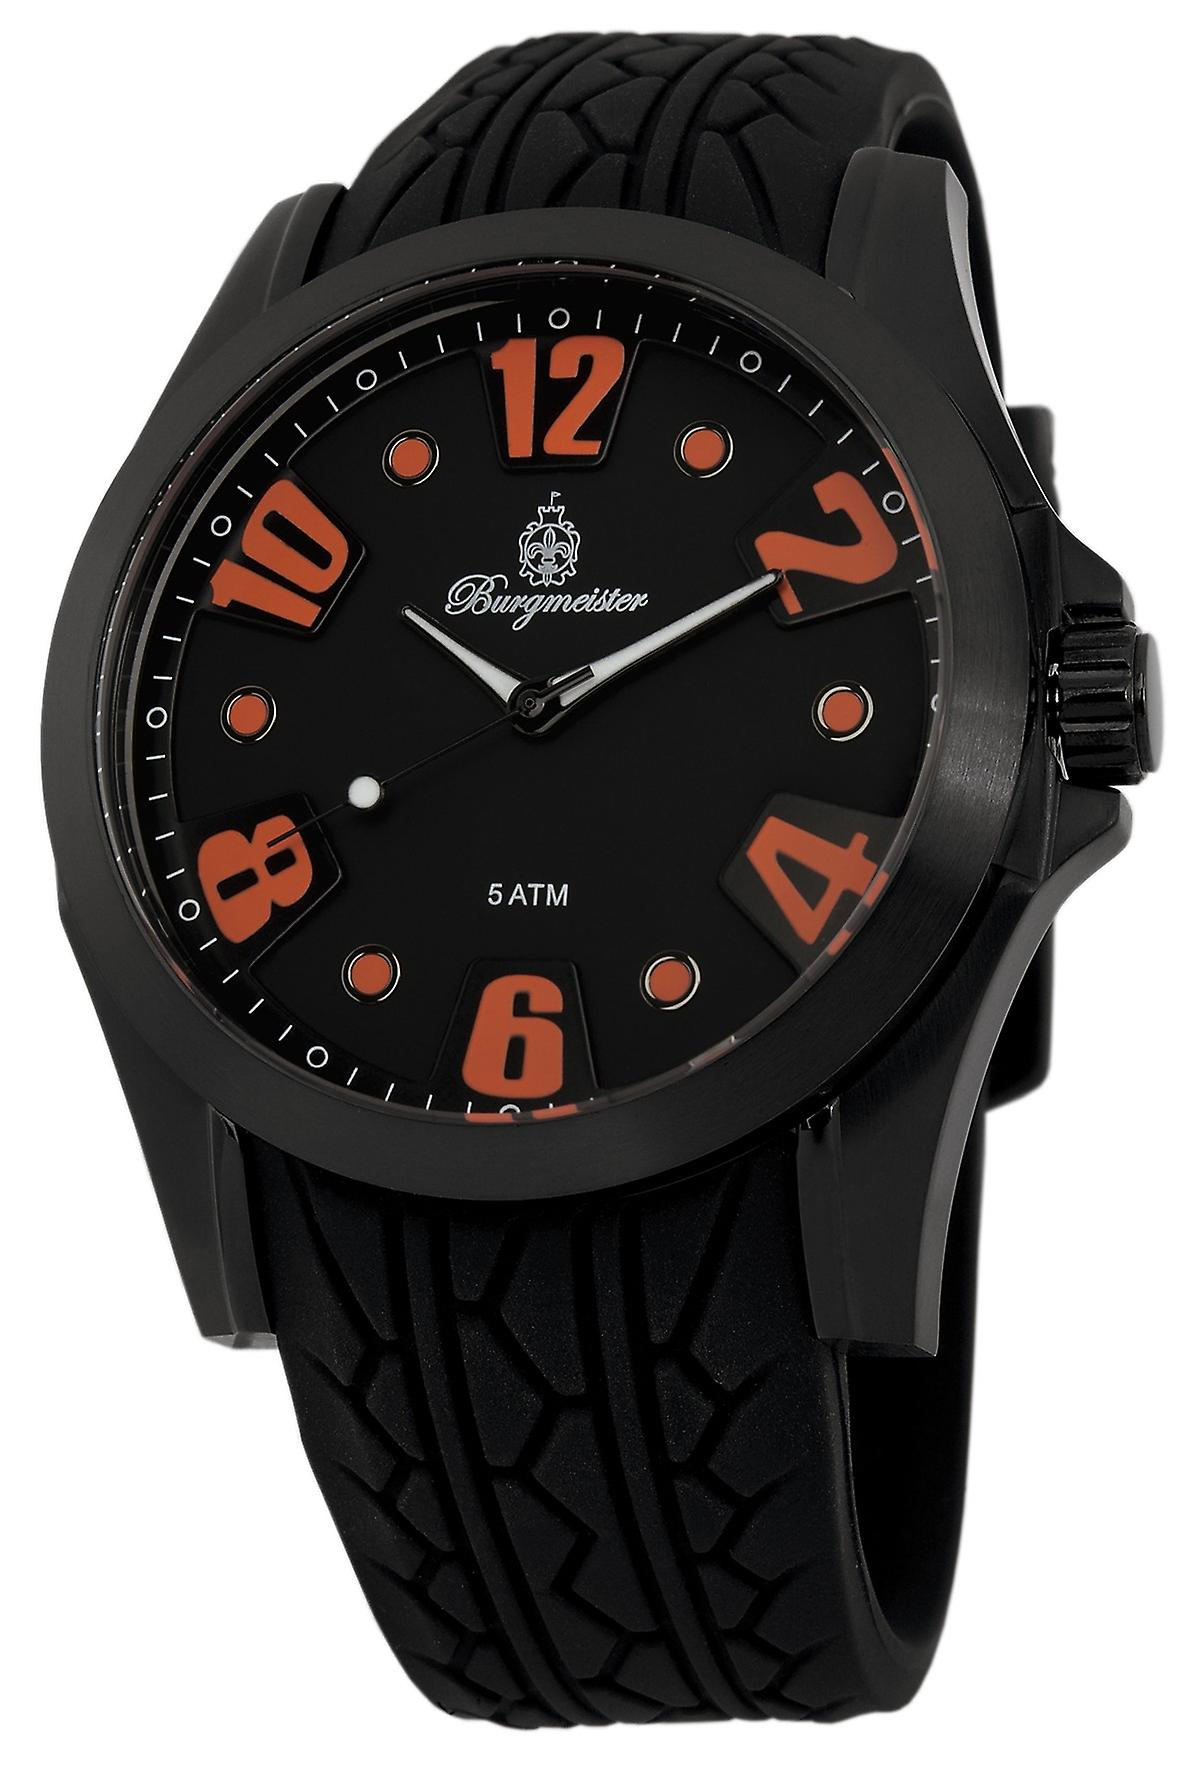 Burgmeister Black Spirit Gents Watch BM606-622B